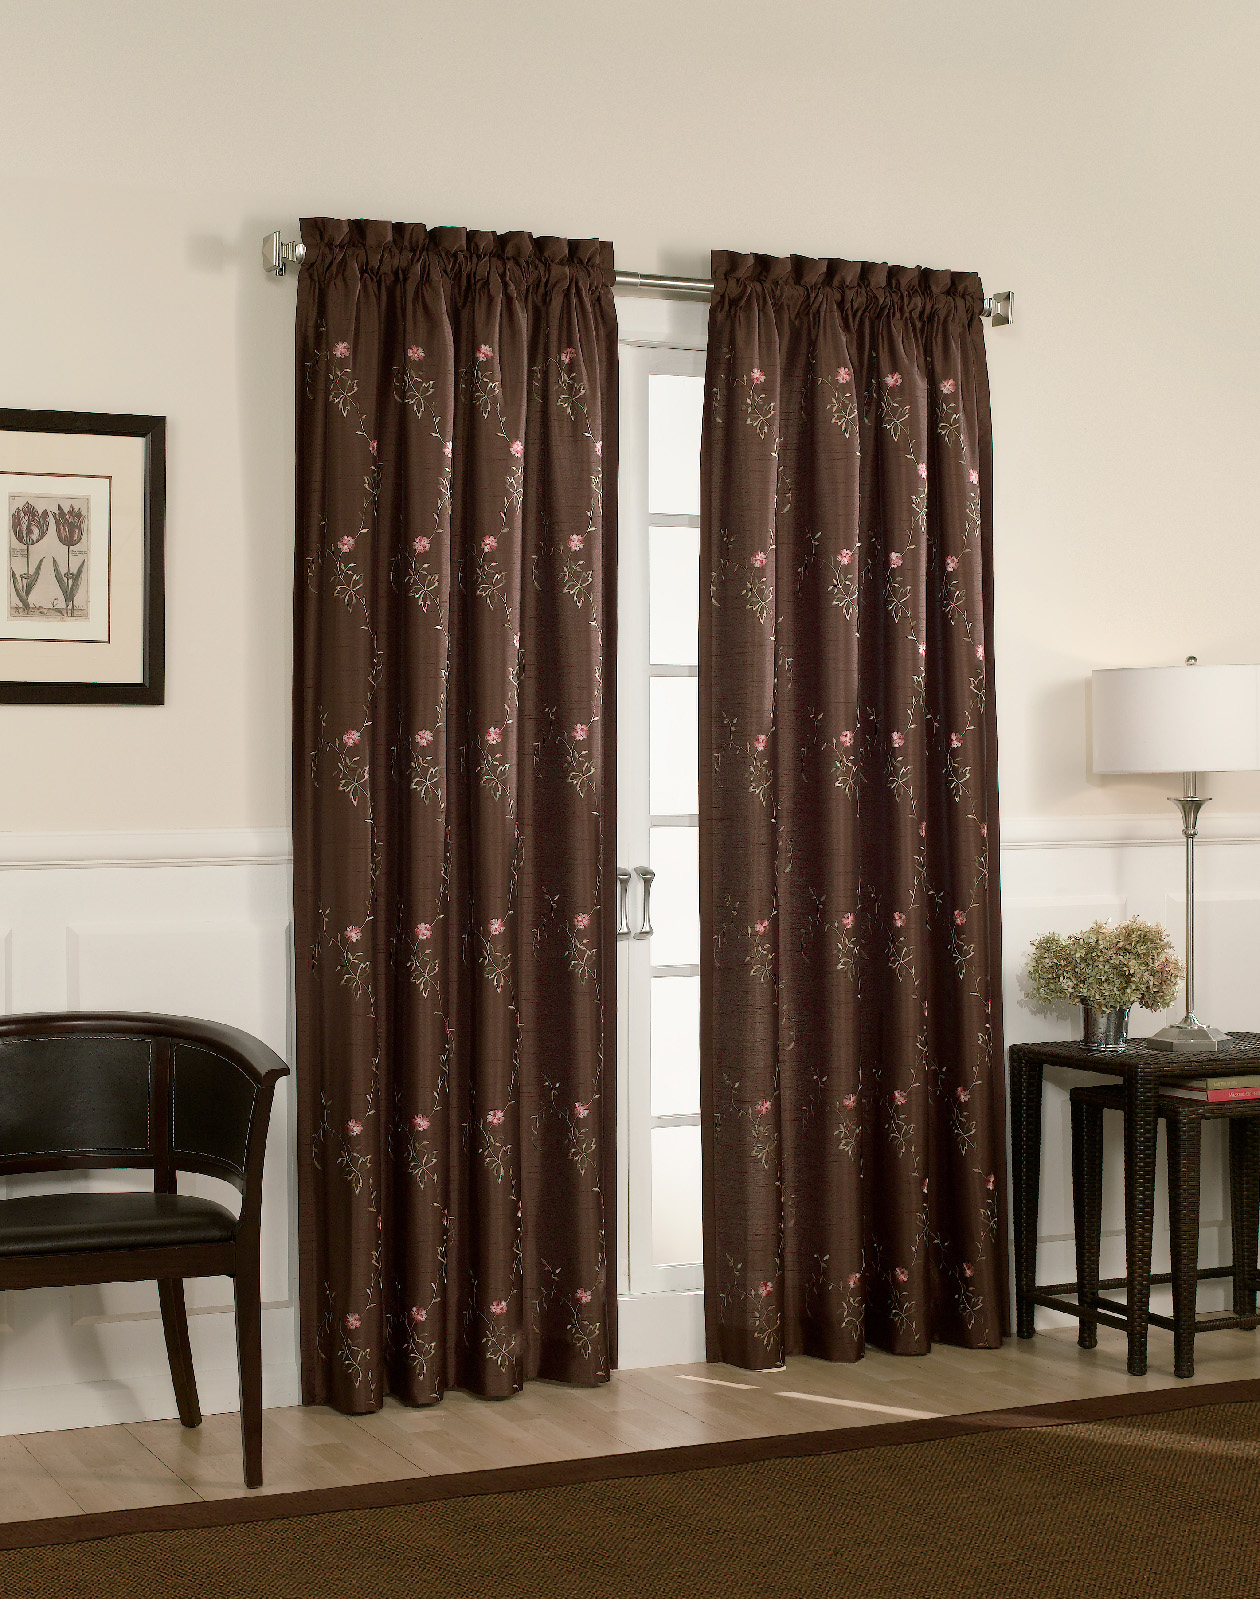 brown-with-dot-design-curtain-panels-for-contemporary-interior-furniture-decor-idea-beautiful-curtain-panels-for-your-interior-furniture-decor-idea-jcpenney-curtains-curtain-panel-sidelight